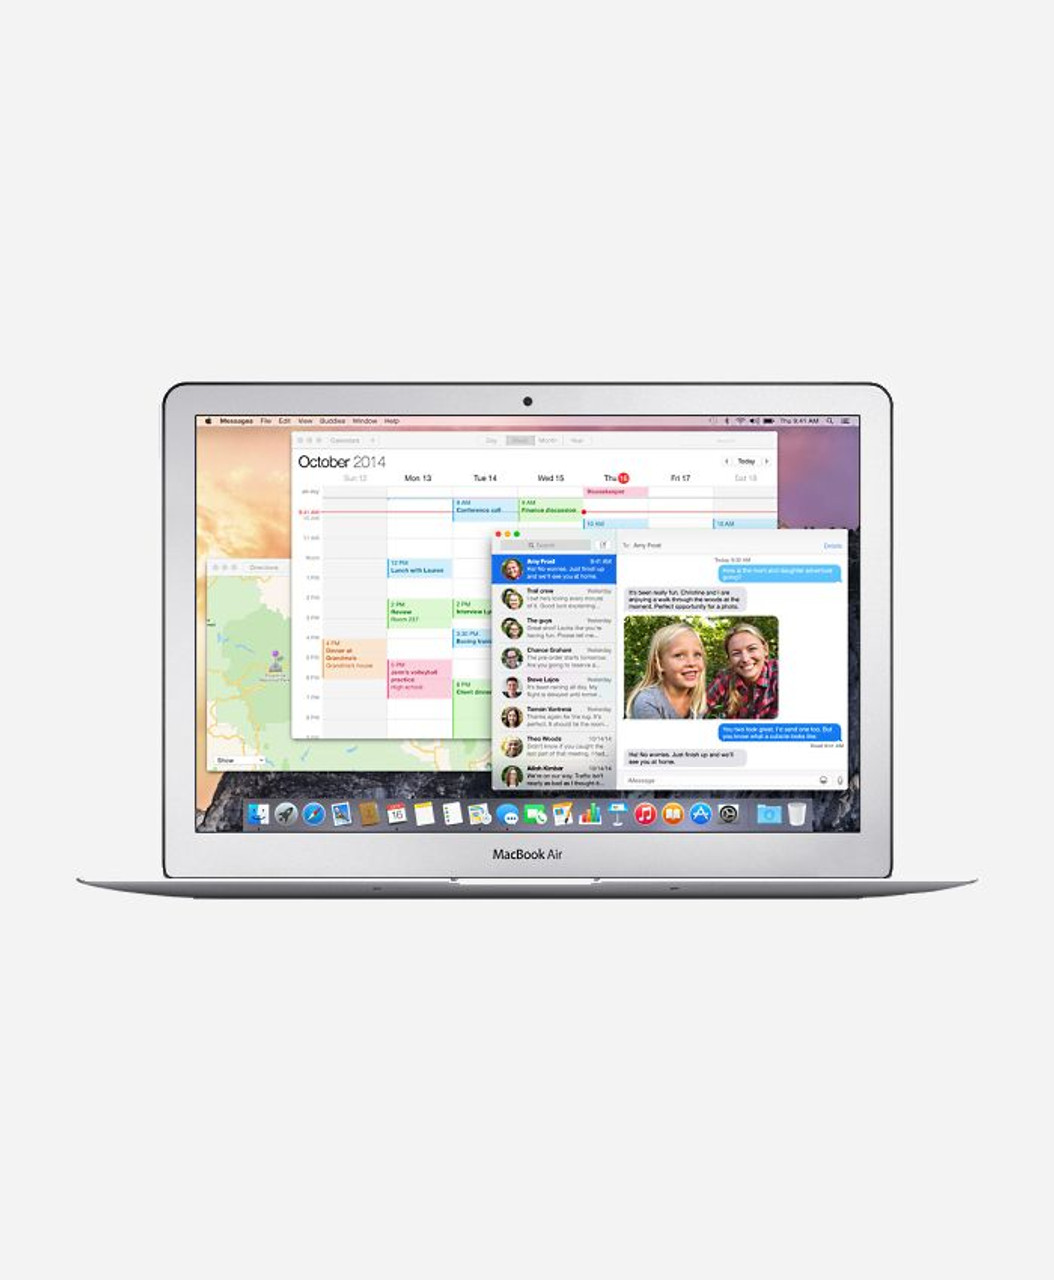 Macbook Air 11 6-inch (Glossy) 2 2GHZ Dual Core i7 (Early 2015)   - Apple  MJVM2LL/A-BTO